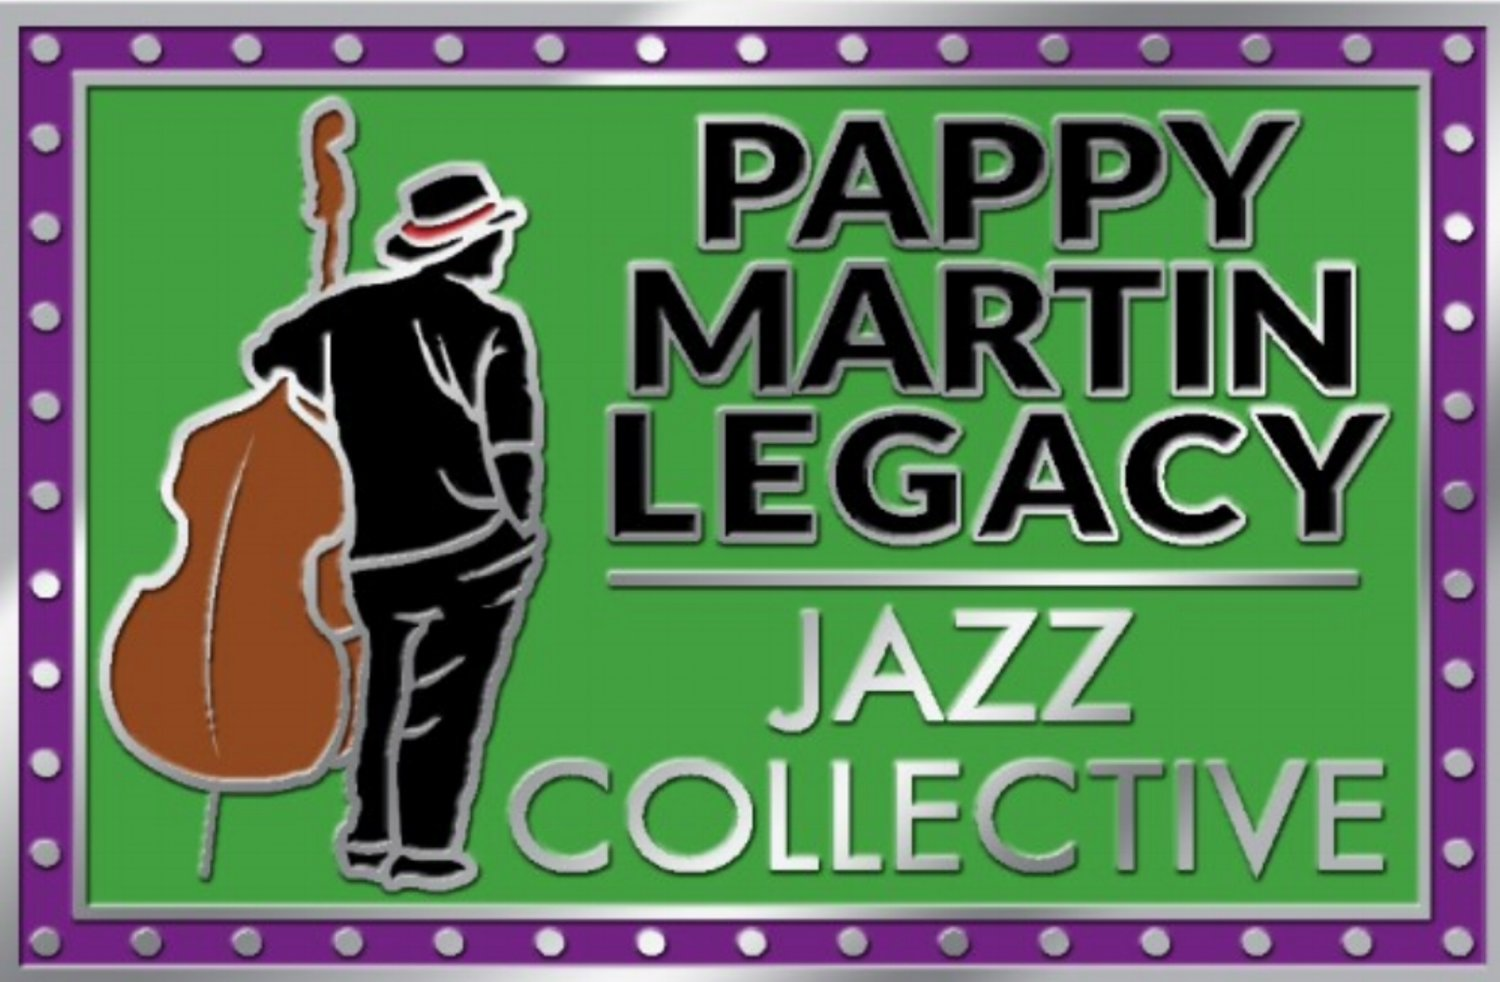 Pappy Martin Legacy Jazz Collective